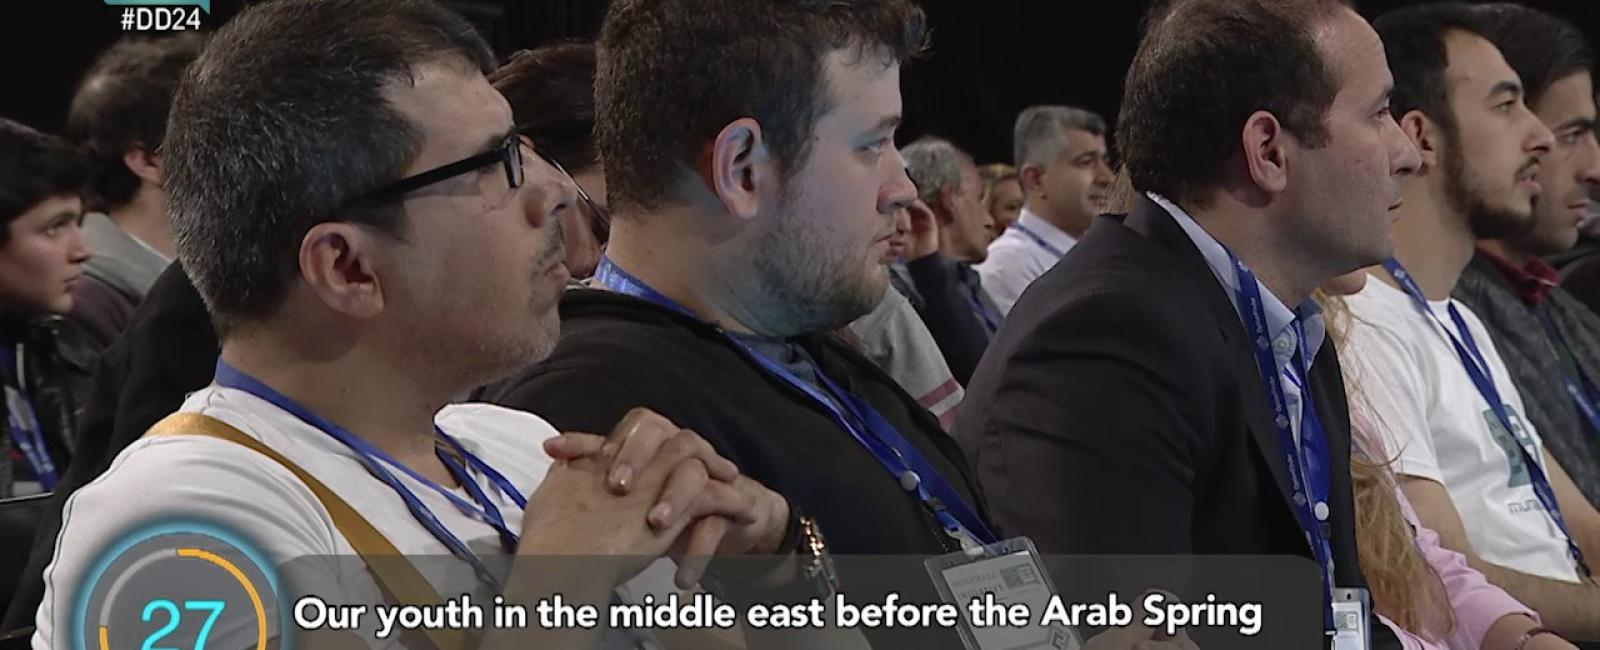 Full Debate: Trump Is Better for The Arab World #DD24